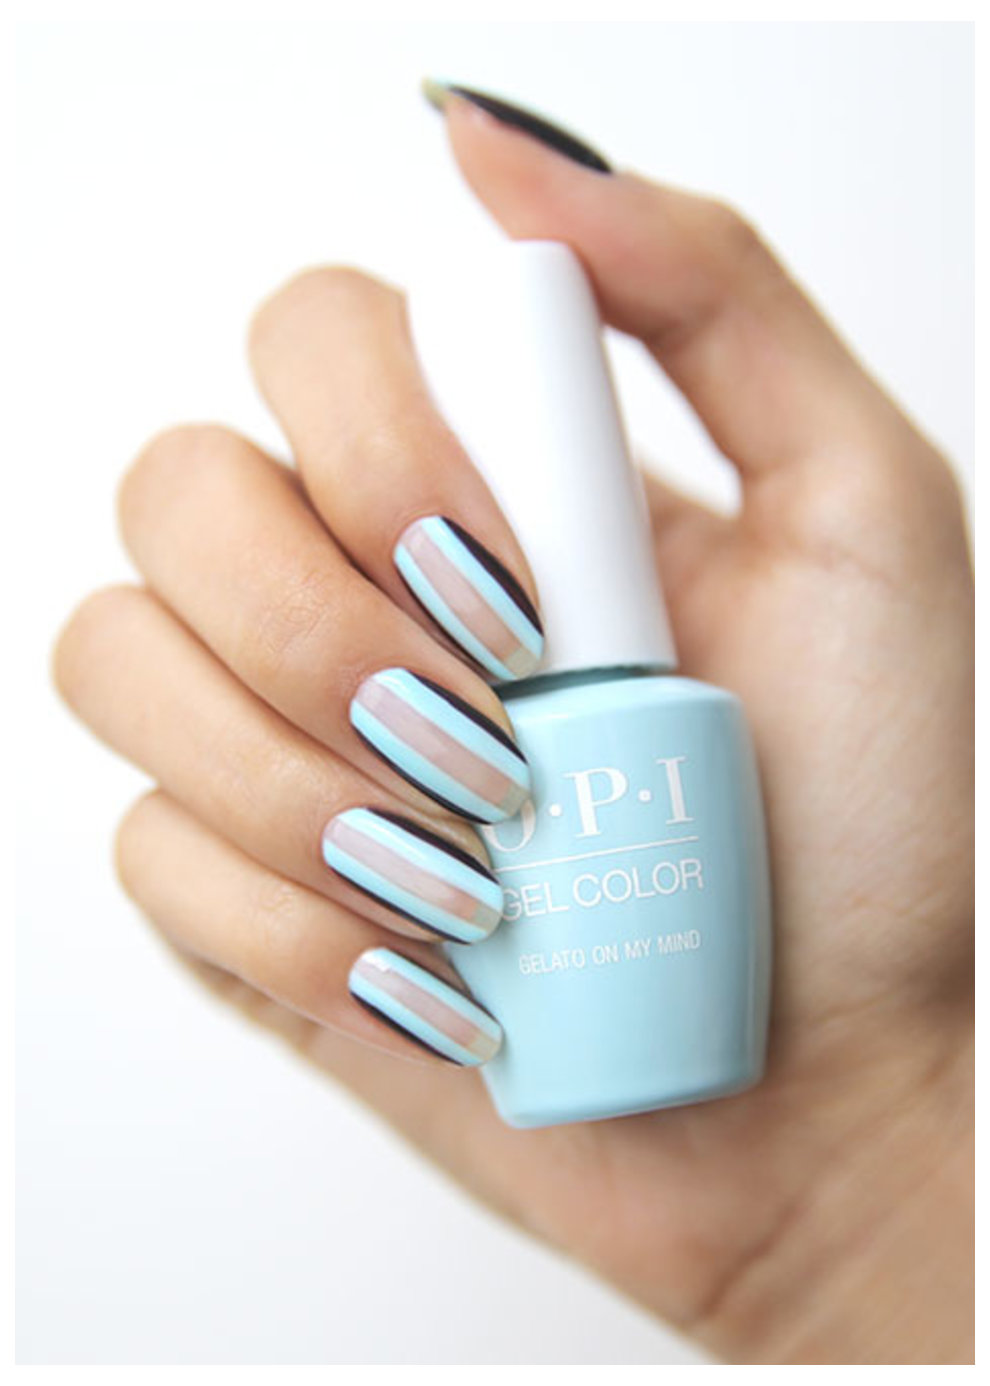 Gel Polish Nail art by Mei Kawajiri @nailsbymei and OPI